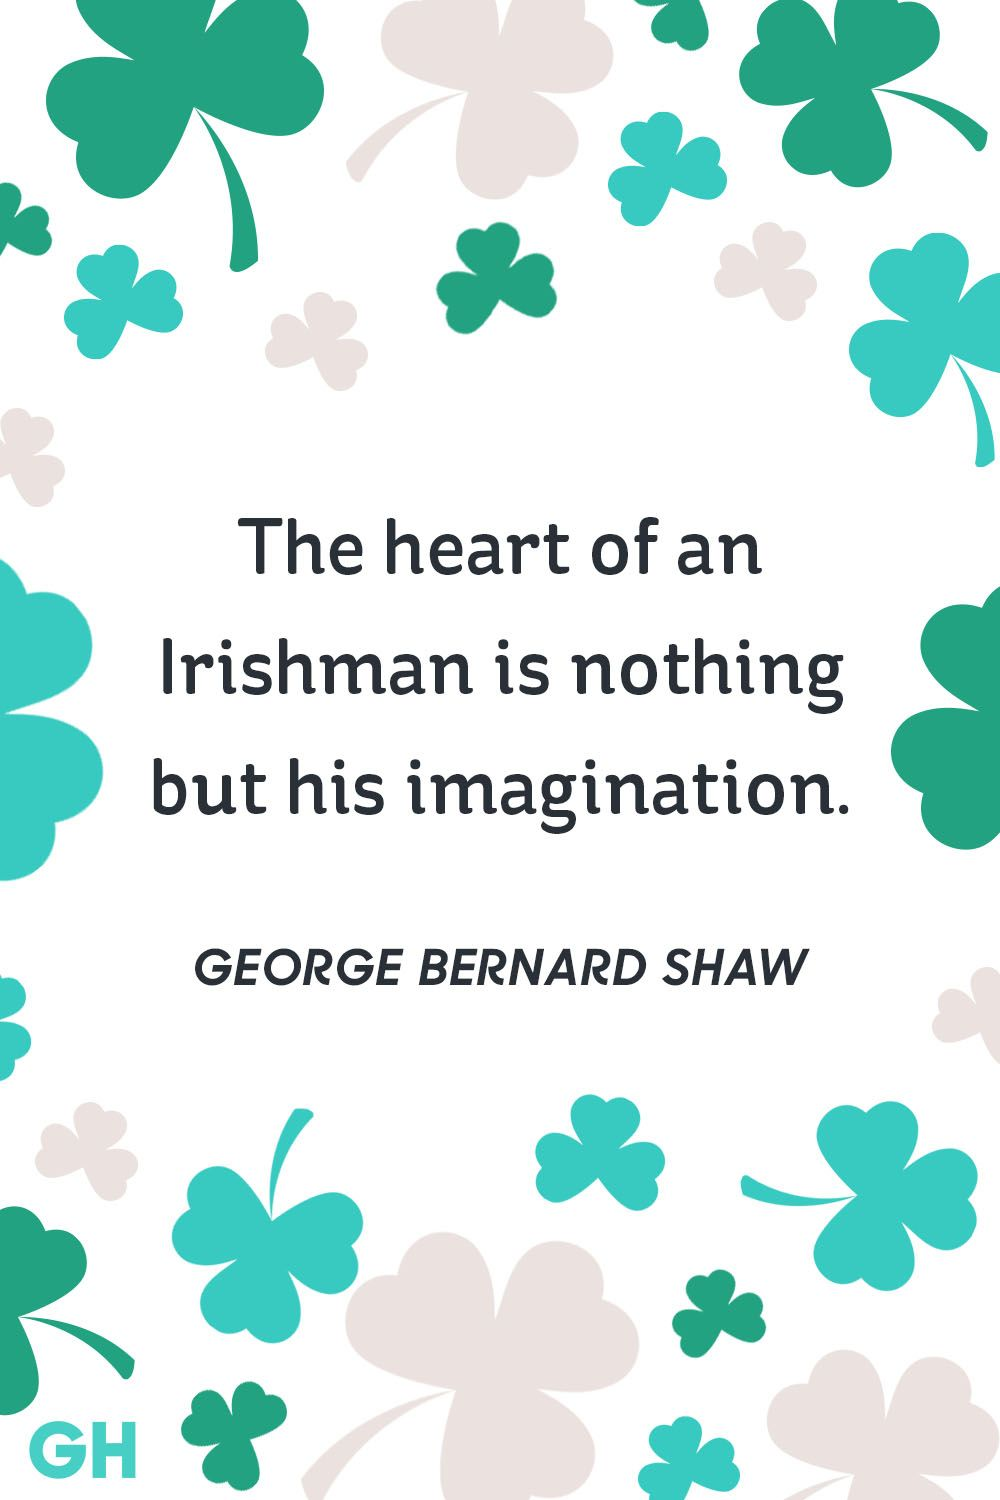 george bernard shaw st. patrick's day quote